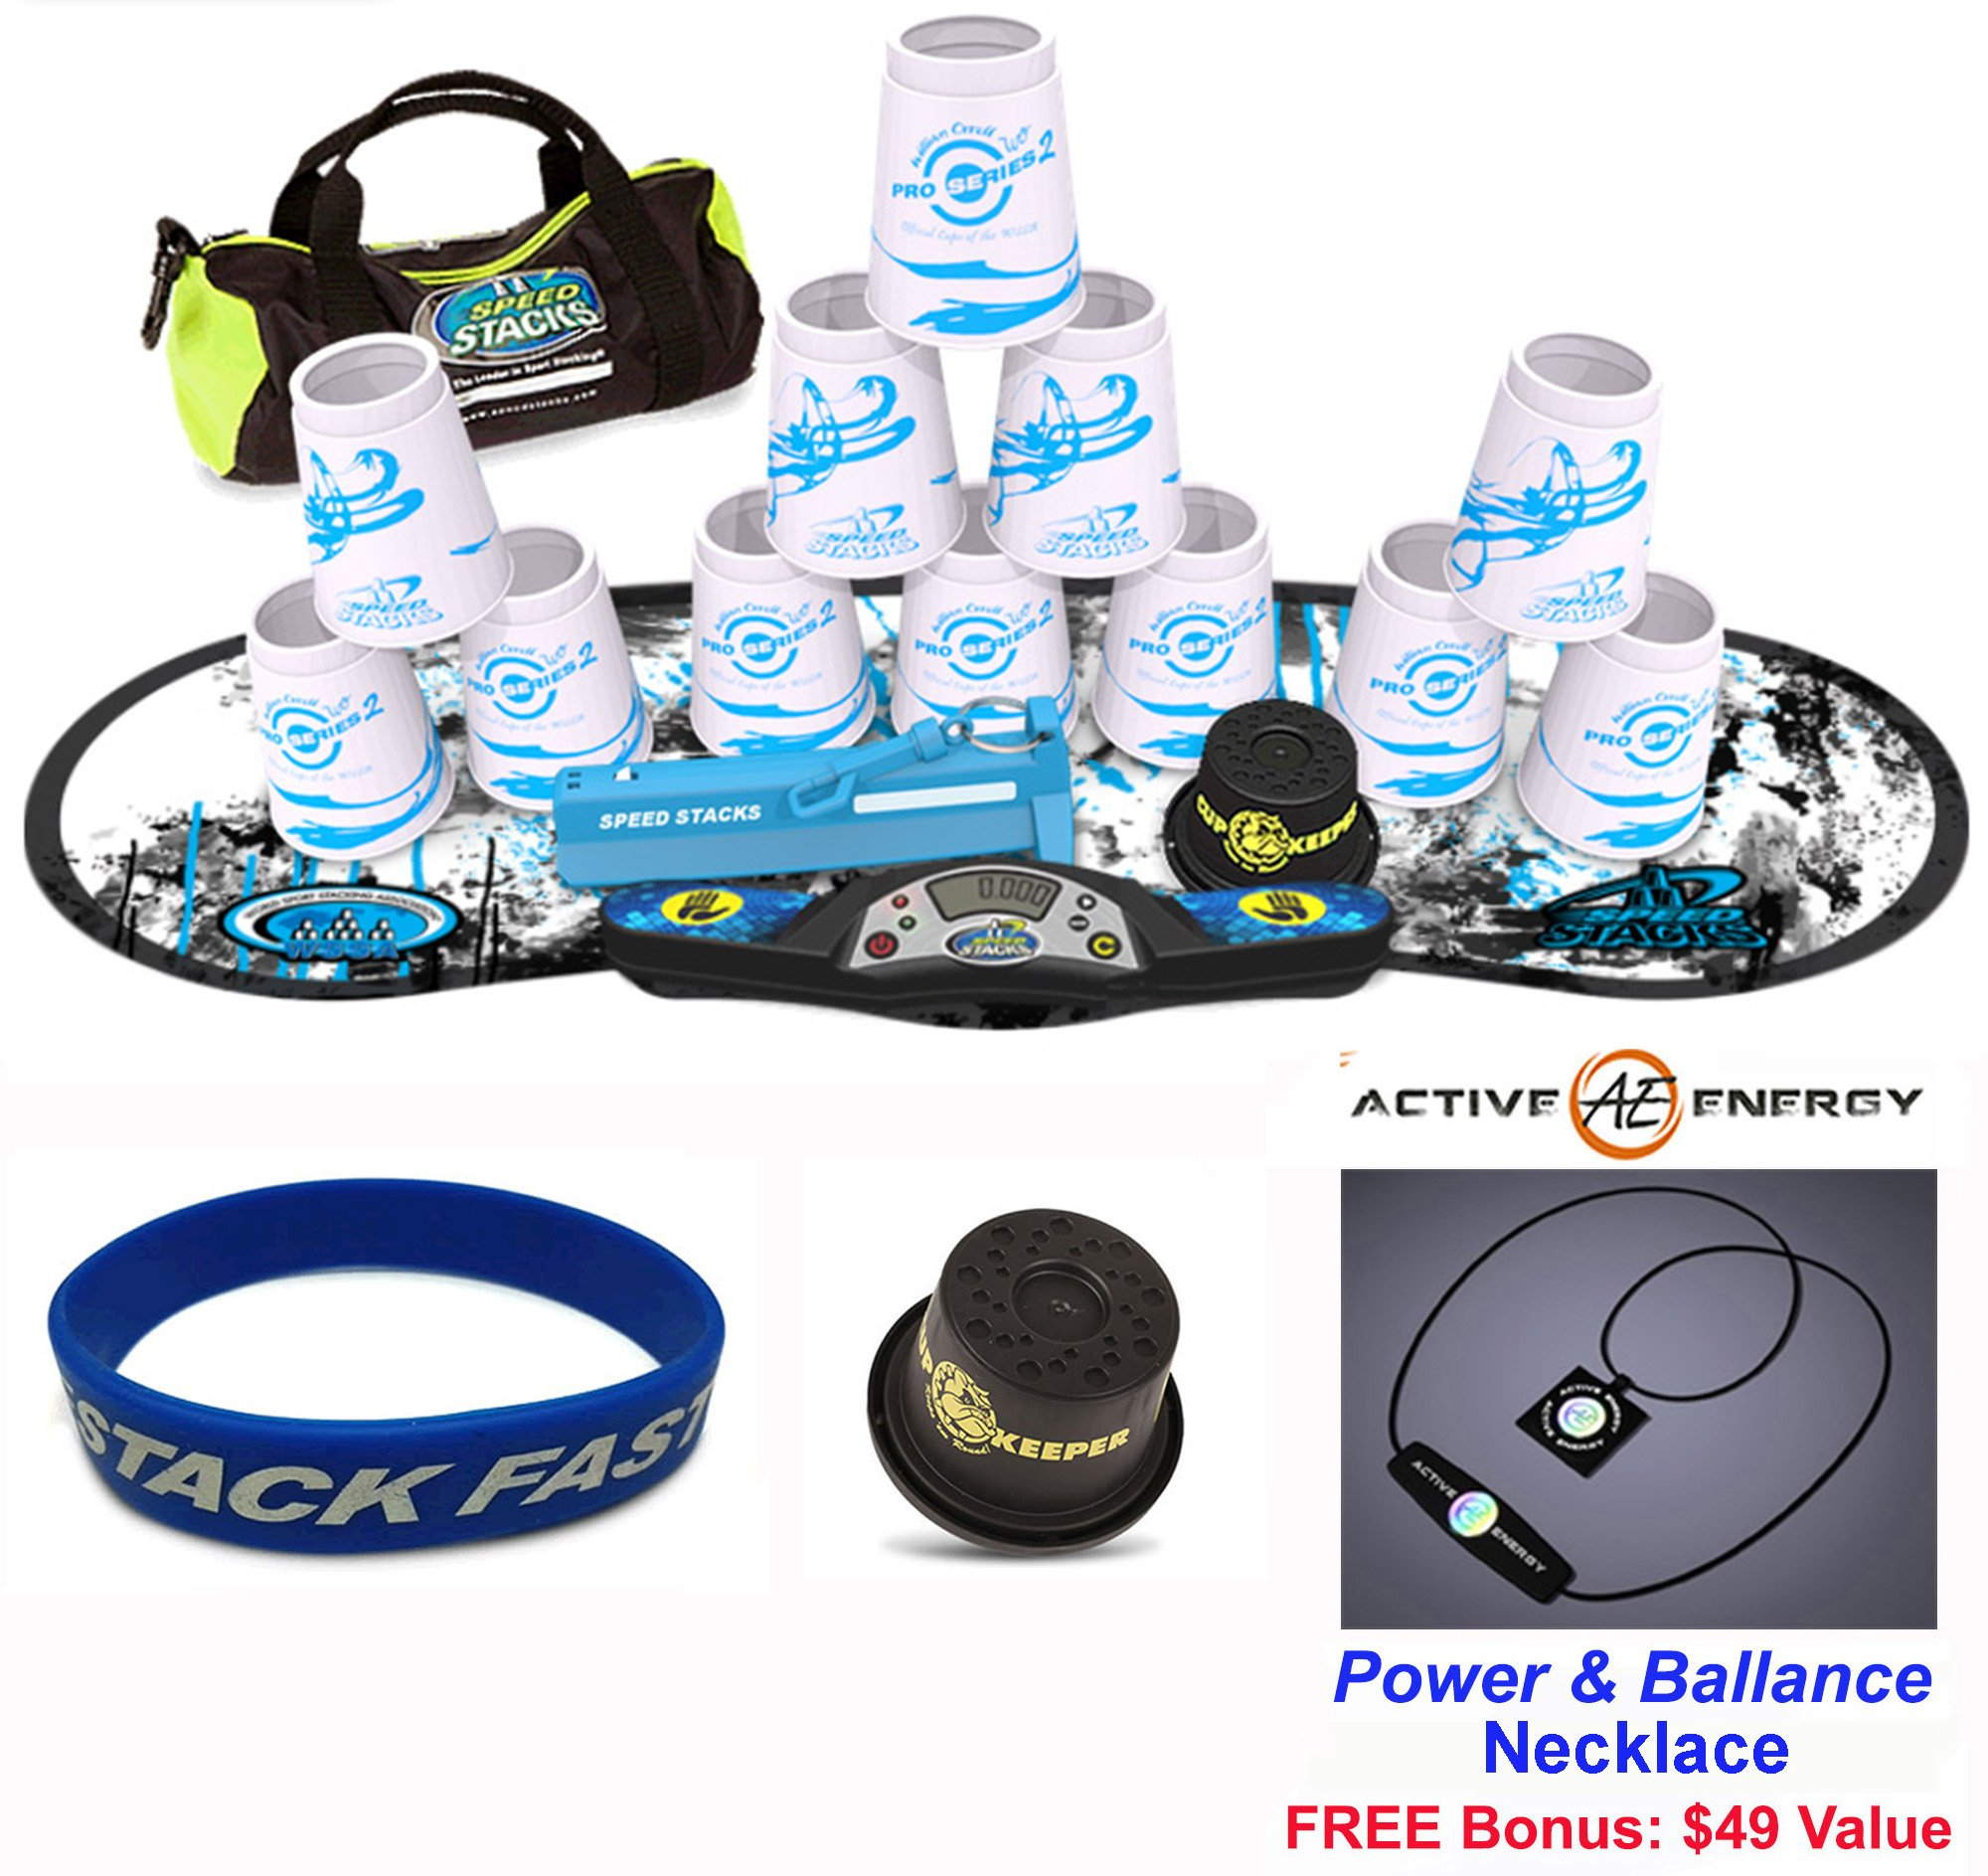 Speed Stacks Combo Set ''The Works'': 12 PRO Series #2 4'' Cups, REBEL MUDD Gen 3 Mat, G4 Pro Timer, Cup Keeper, Stem, Gear Bag, Speed Stacks Wristband + Active Energy Necklace by Speed Stacks